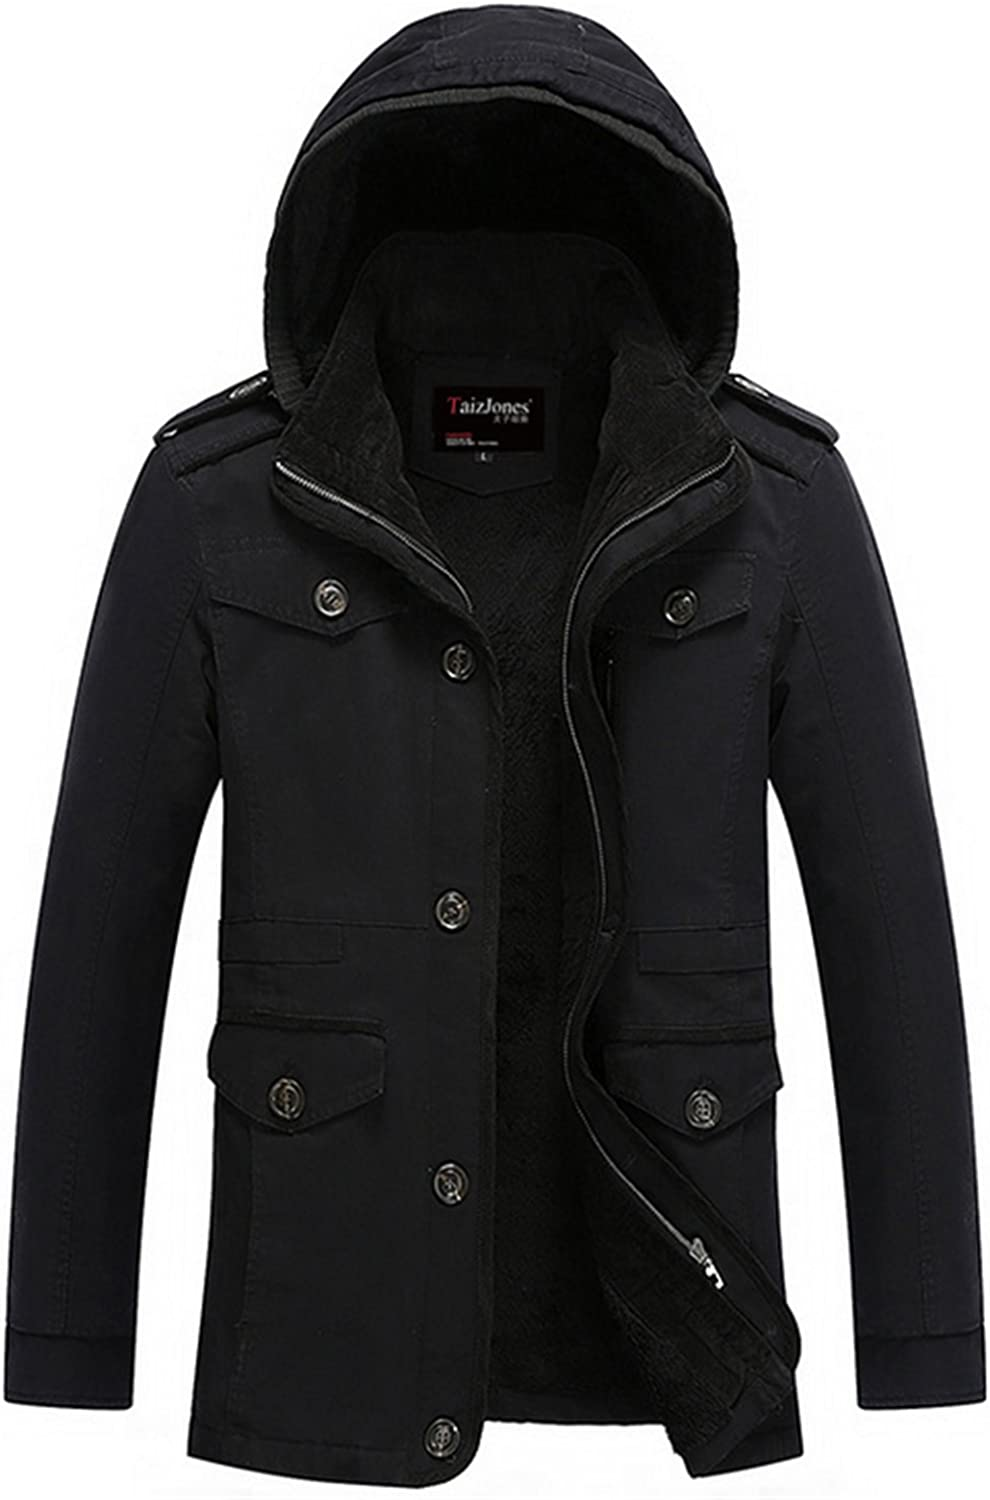 K3K Mens Warm Winter Coat Long section Washed Cotton Lambs Wool Lined Military Jacket